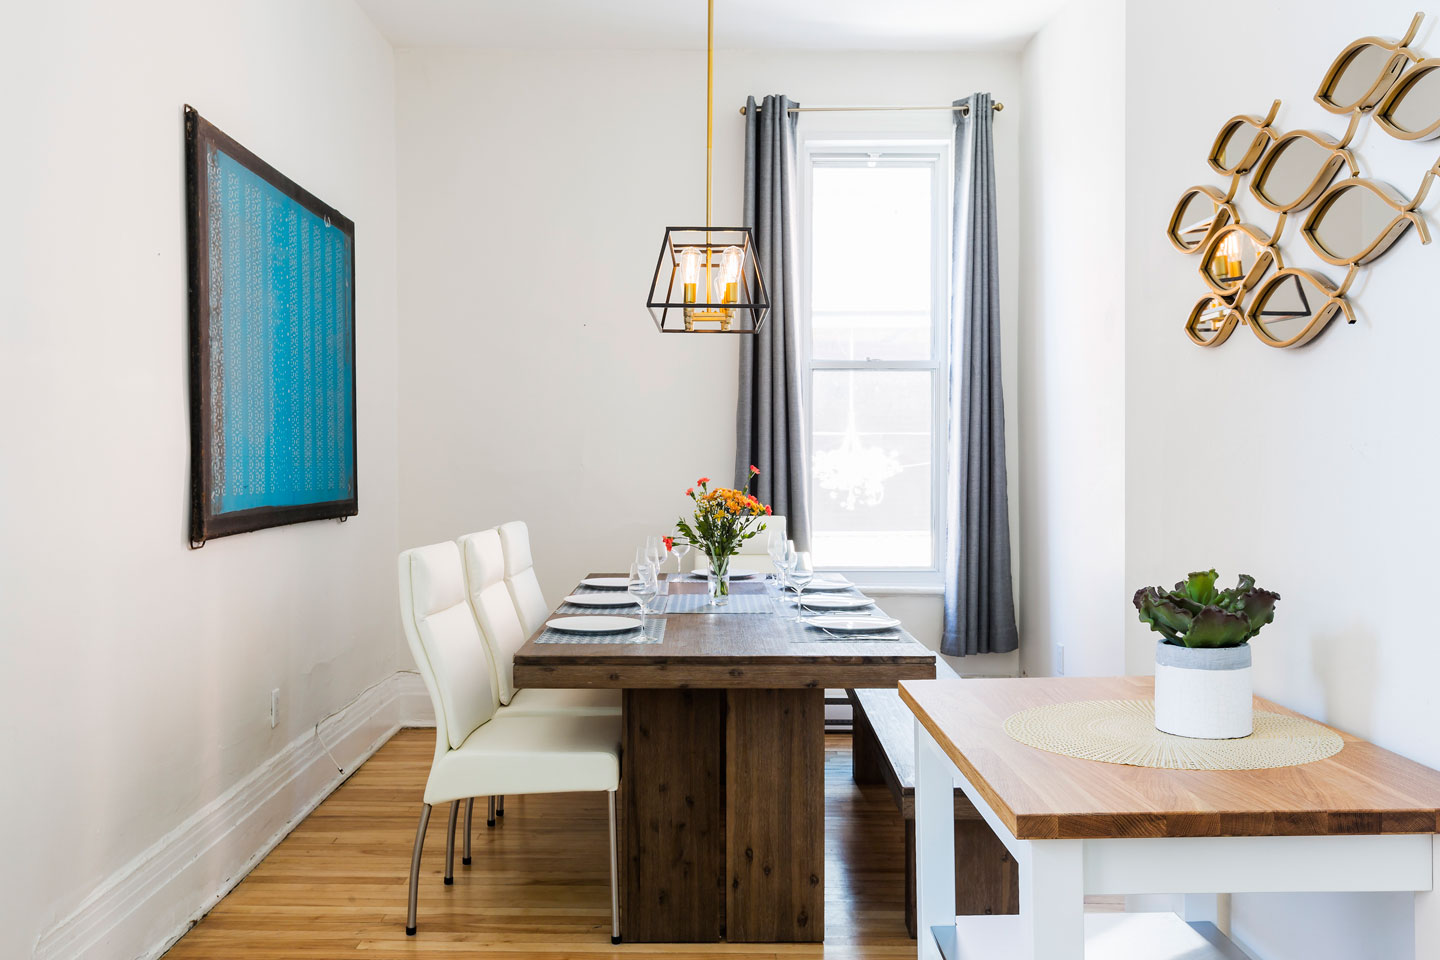 Chic Laurier #2: chic dining room for up to 8 people